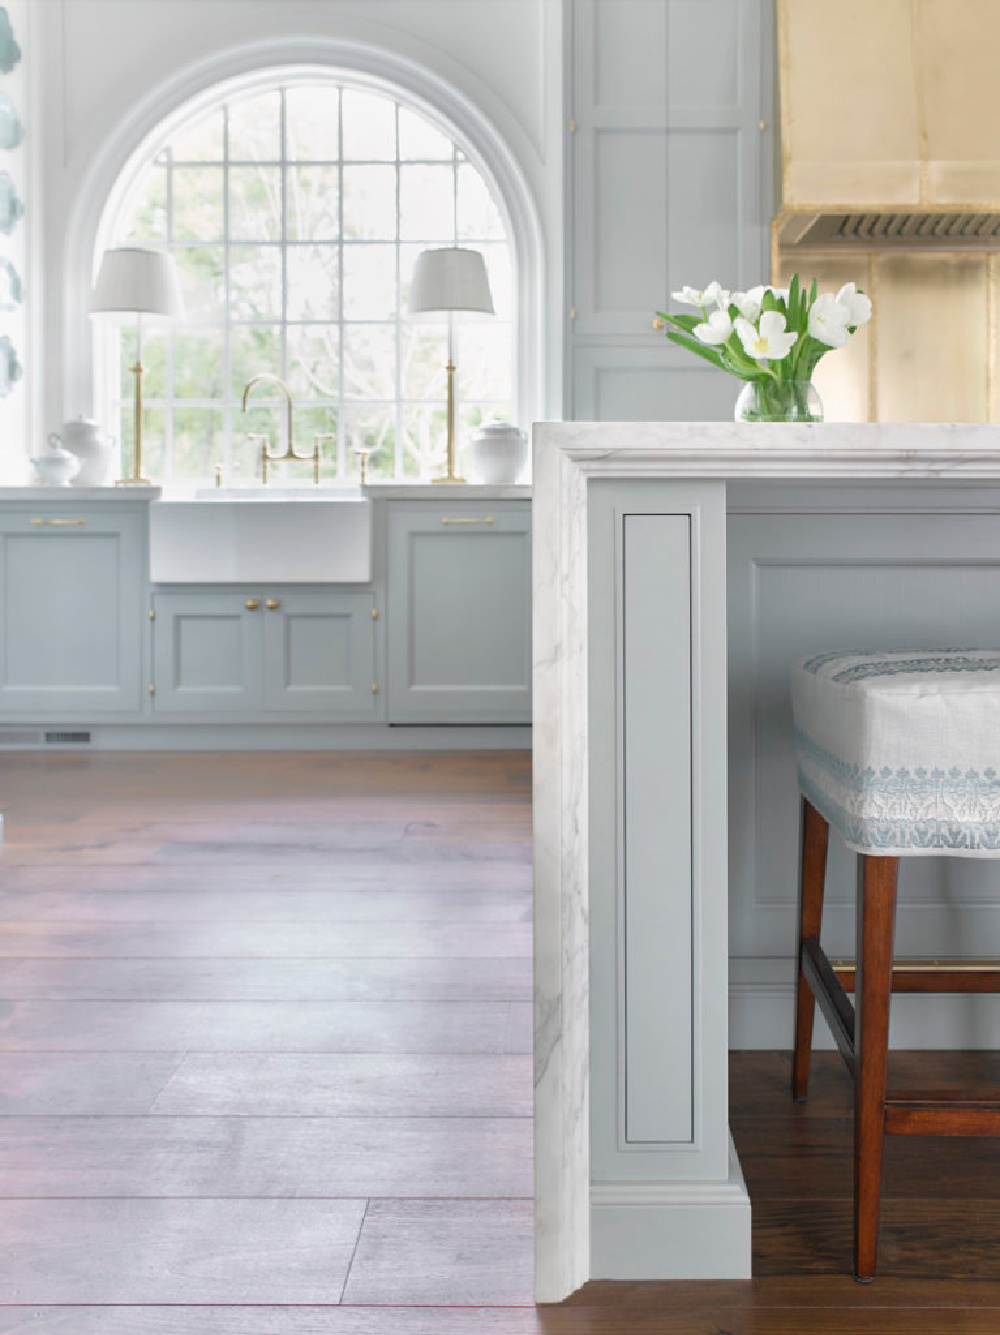 Breathtaking kitchen with light blue by Matthew Quinn. The sink wall with arched window is a shining moment amidst countless others! #bluekitchen #farrowandballlightblue #timelesskitchen #kitchendesign #traditionalkitchen